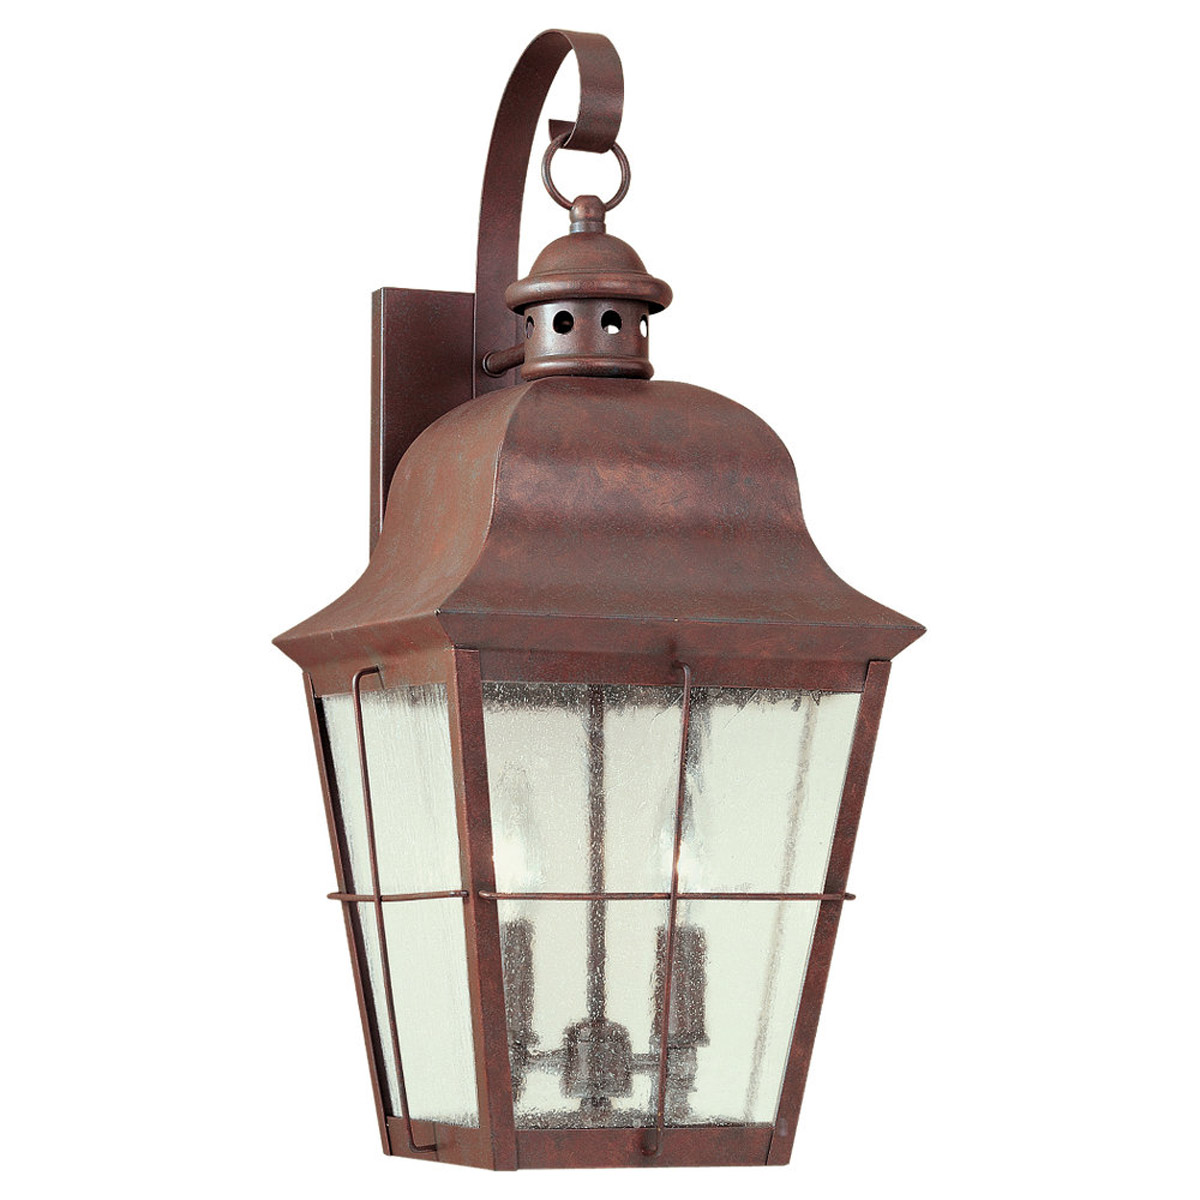 Sea Gull Lighting Chatham 2 Light Outdoor Wall Lantern in Weathered Copper 8463-44